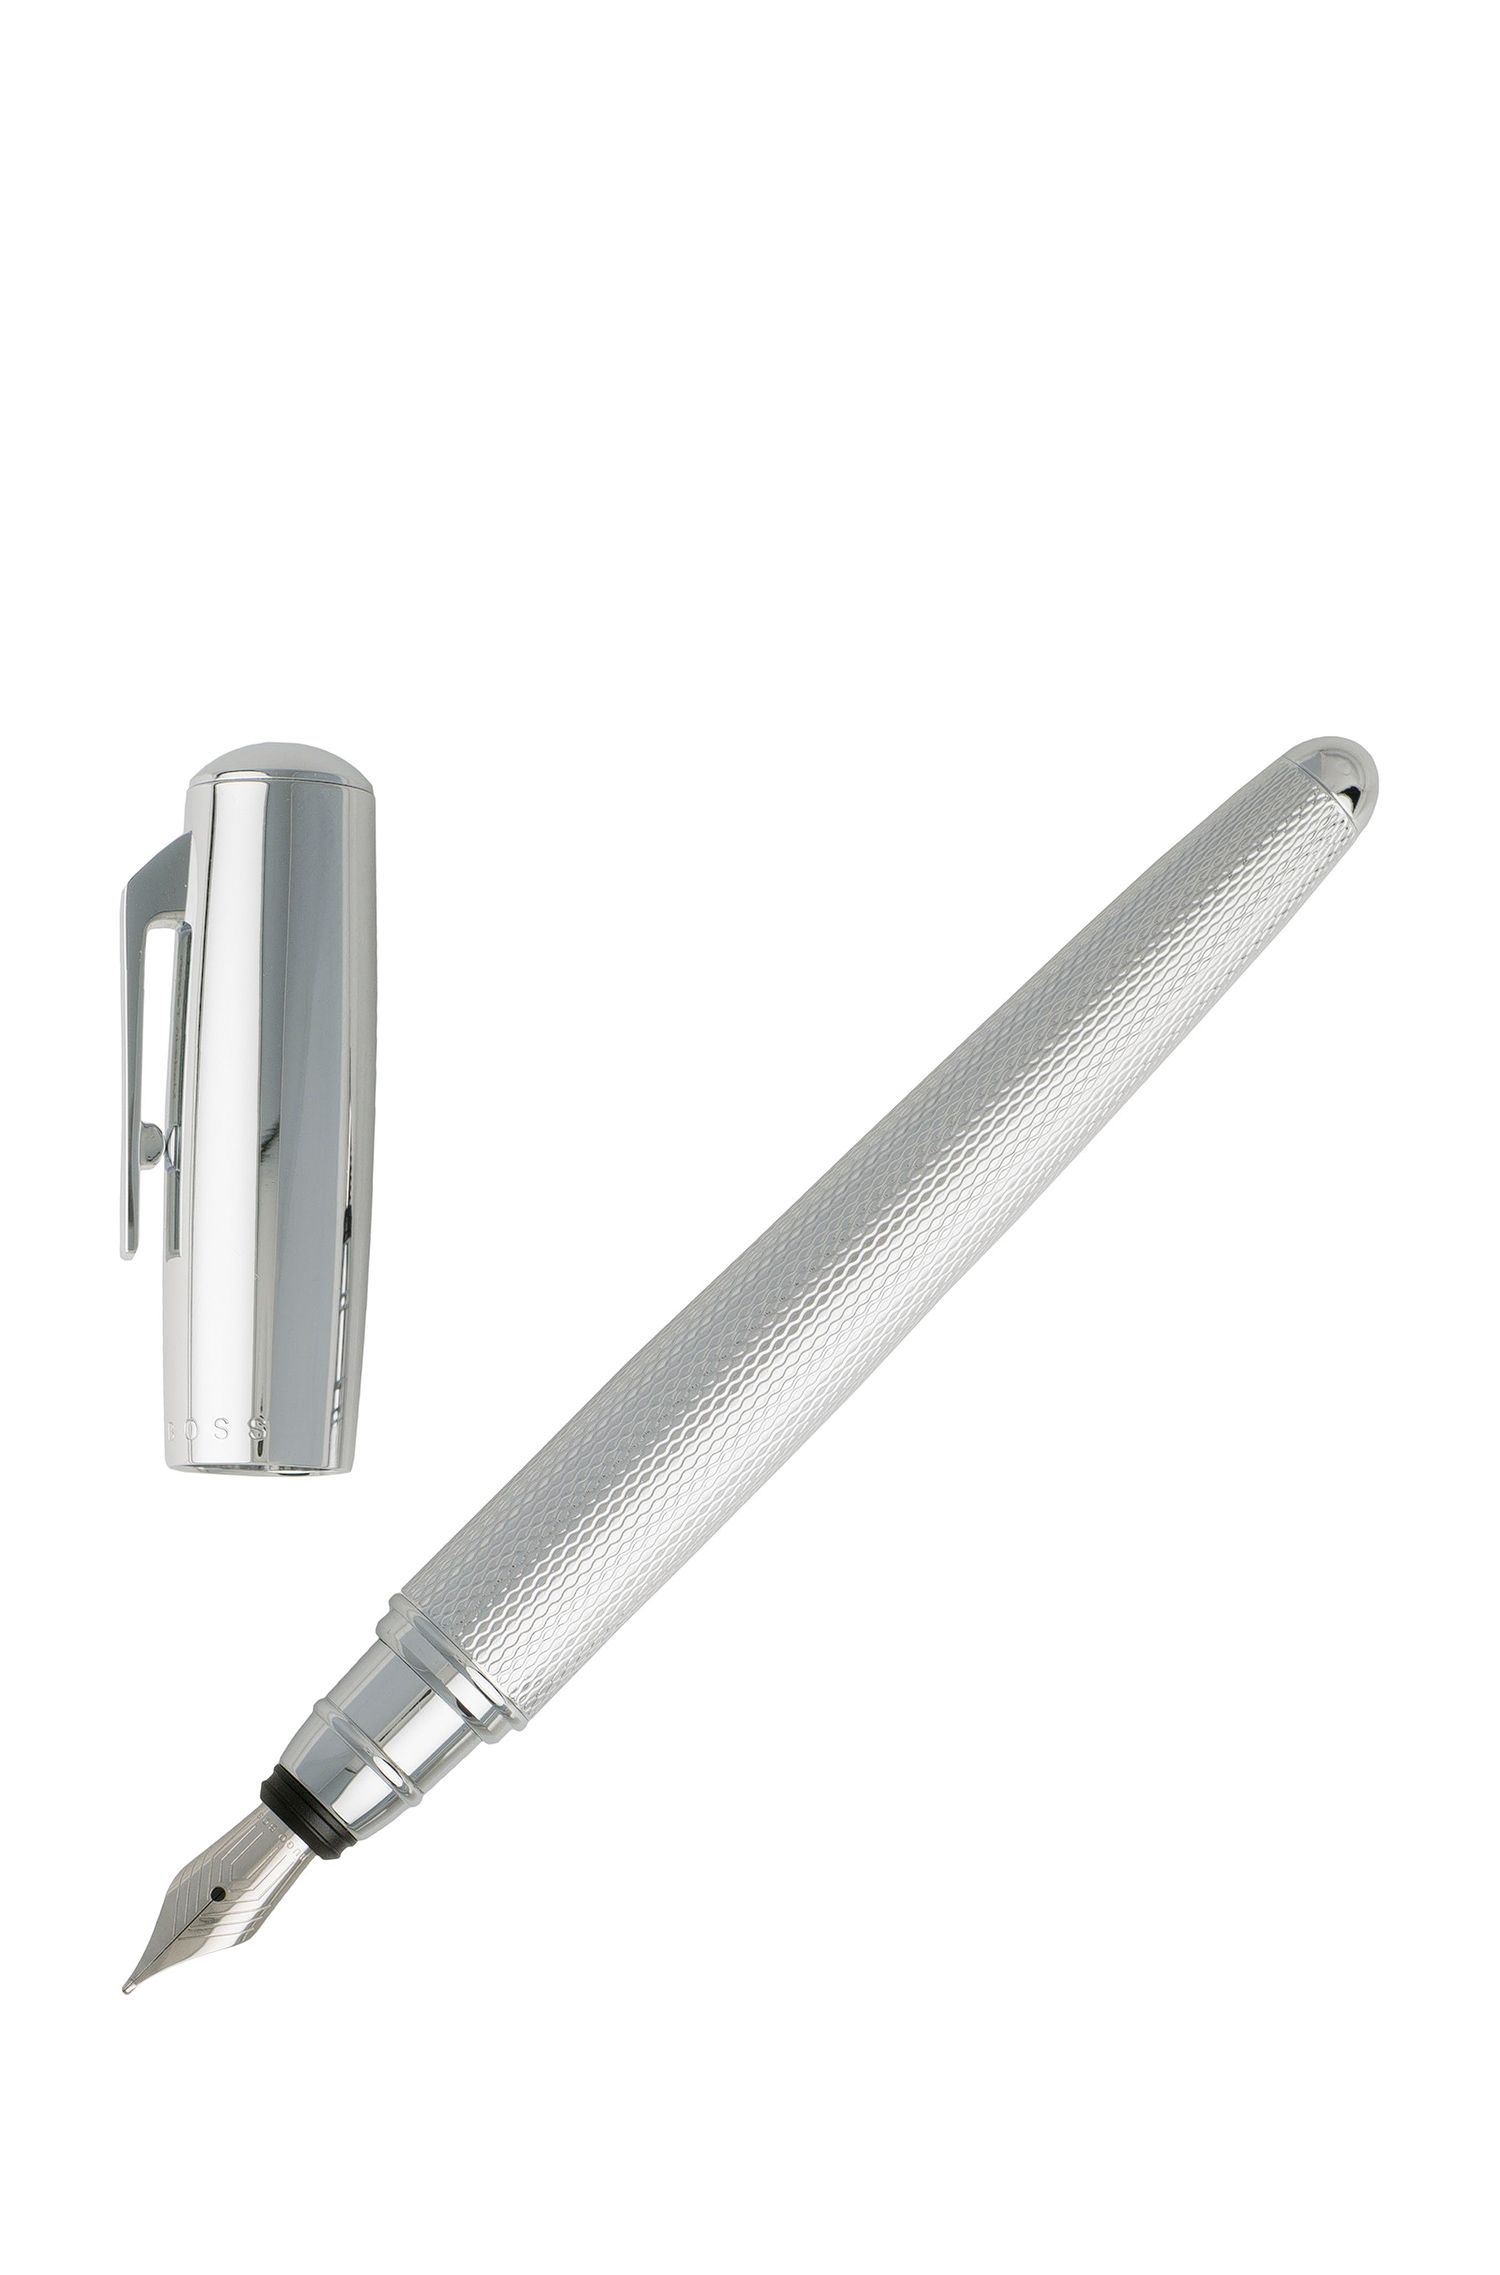 Fountain pen with textured chrome-plated barrel, Silver